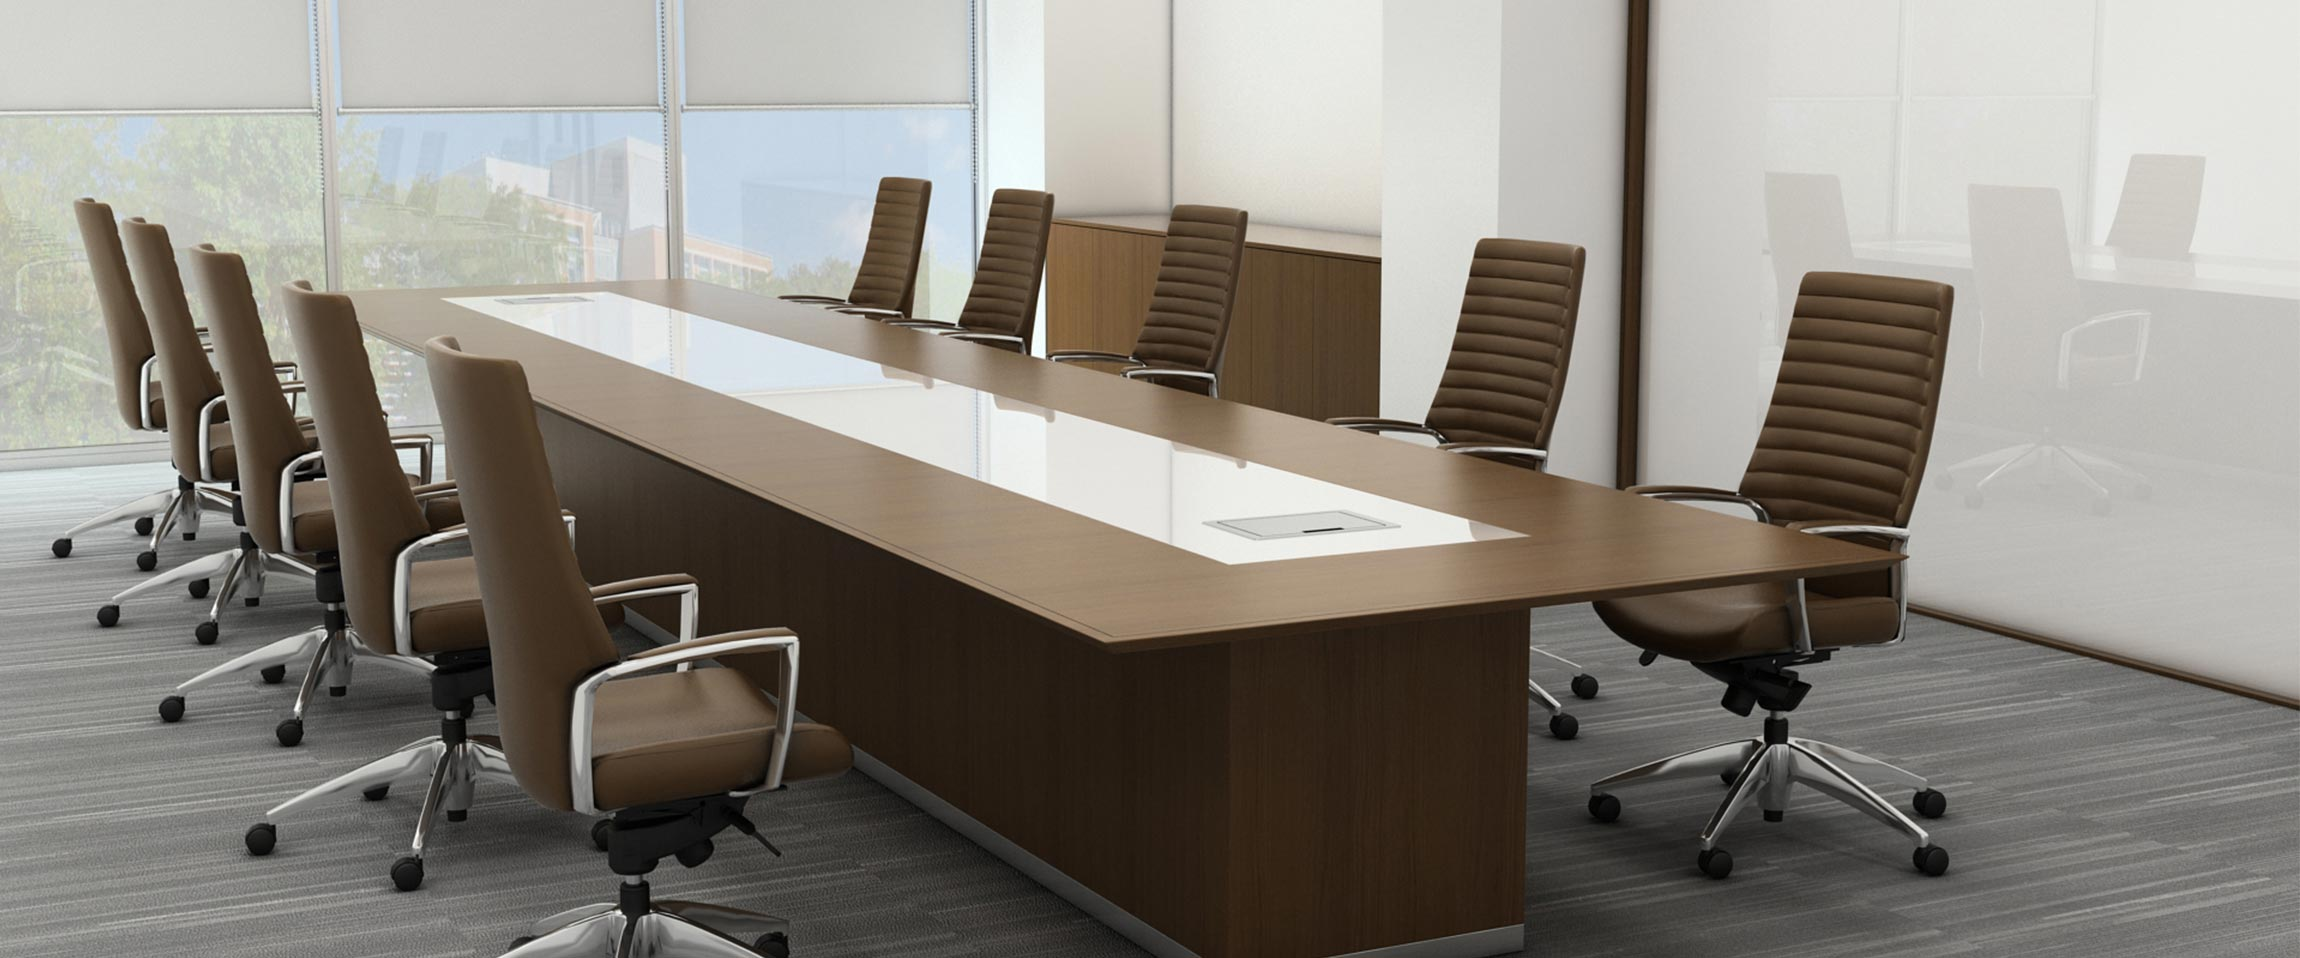 Custom Office Furniture Spring TX By Fulbright Company - Granite conference table for sale